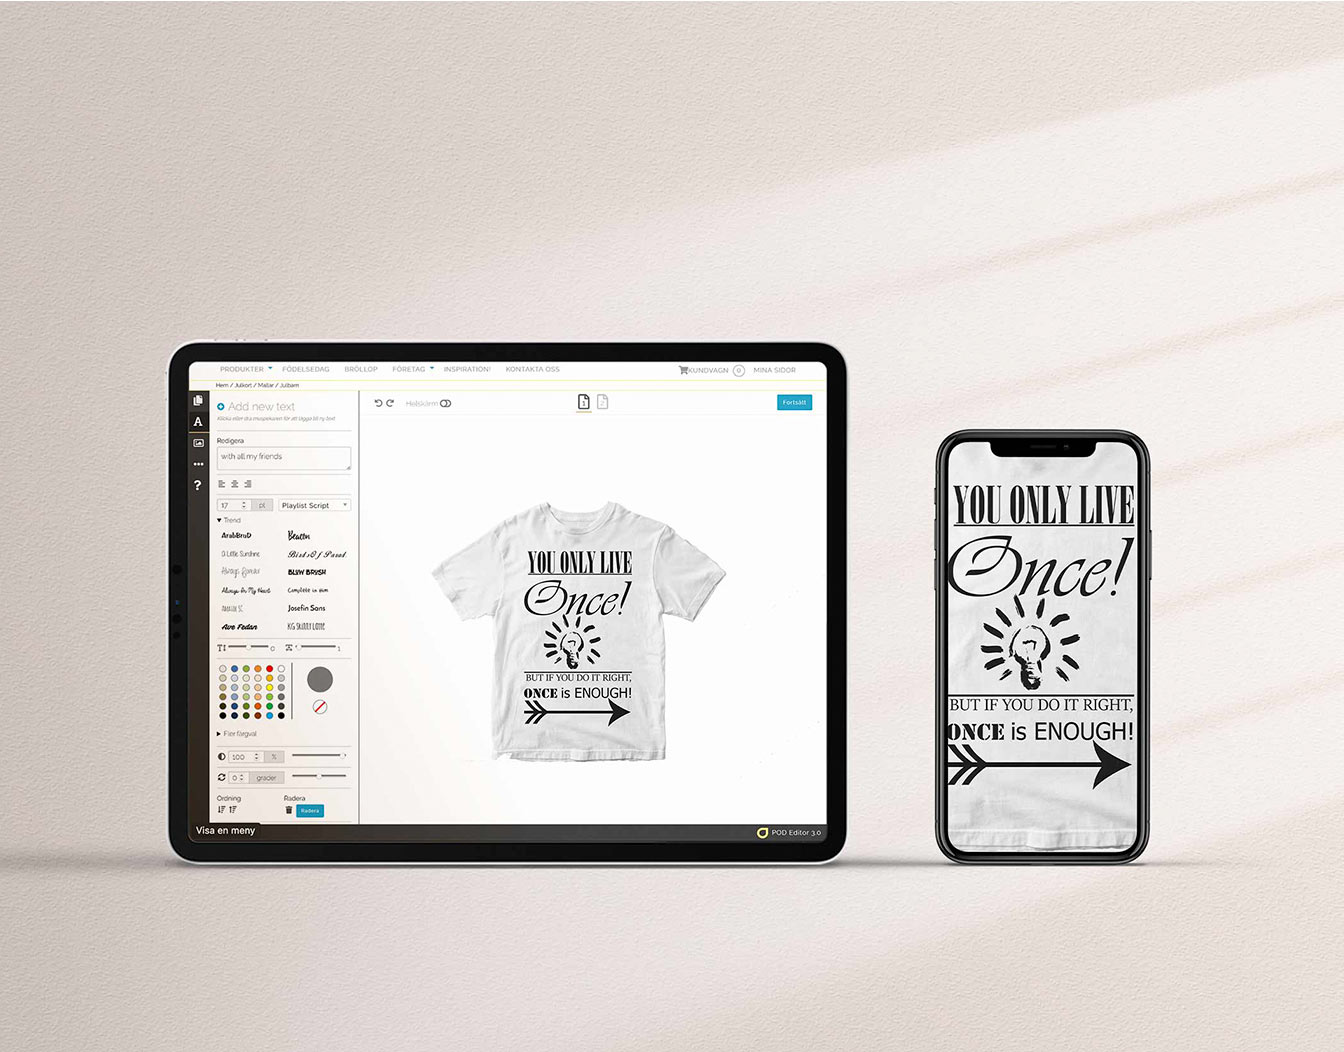 Iphone and ipad showing online tools for t-shirt design